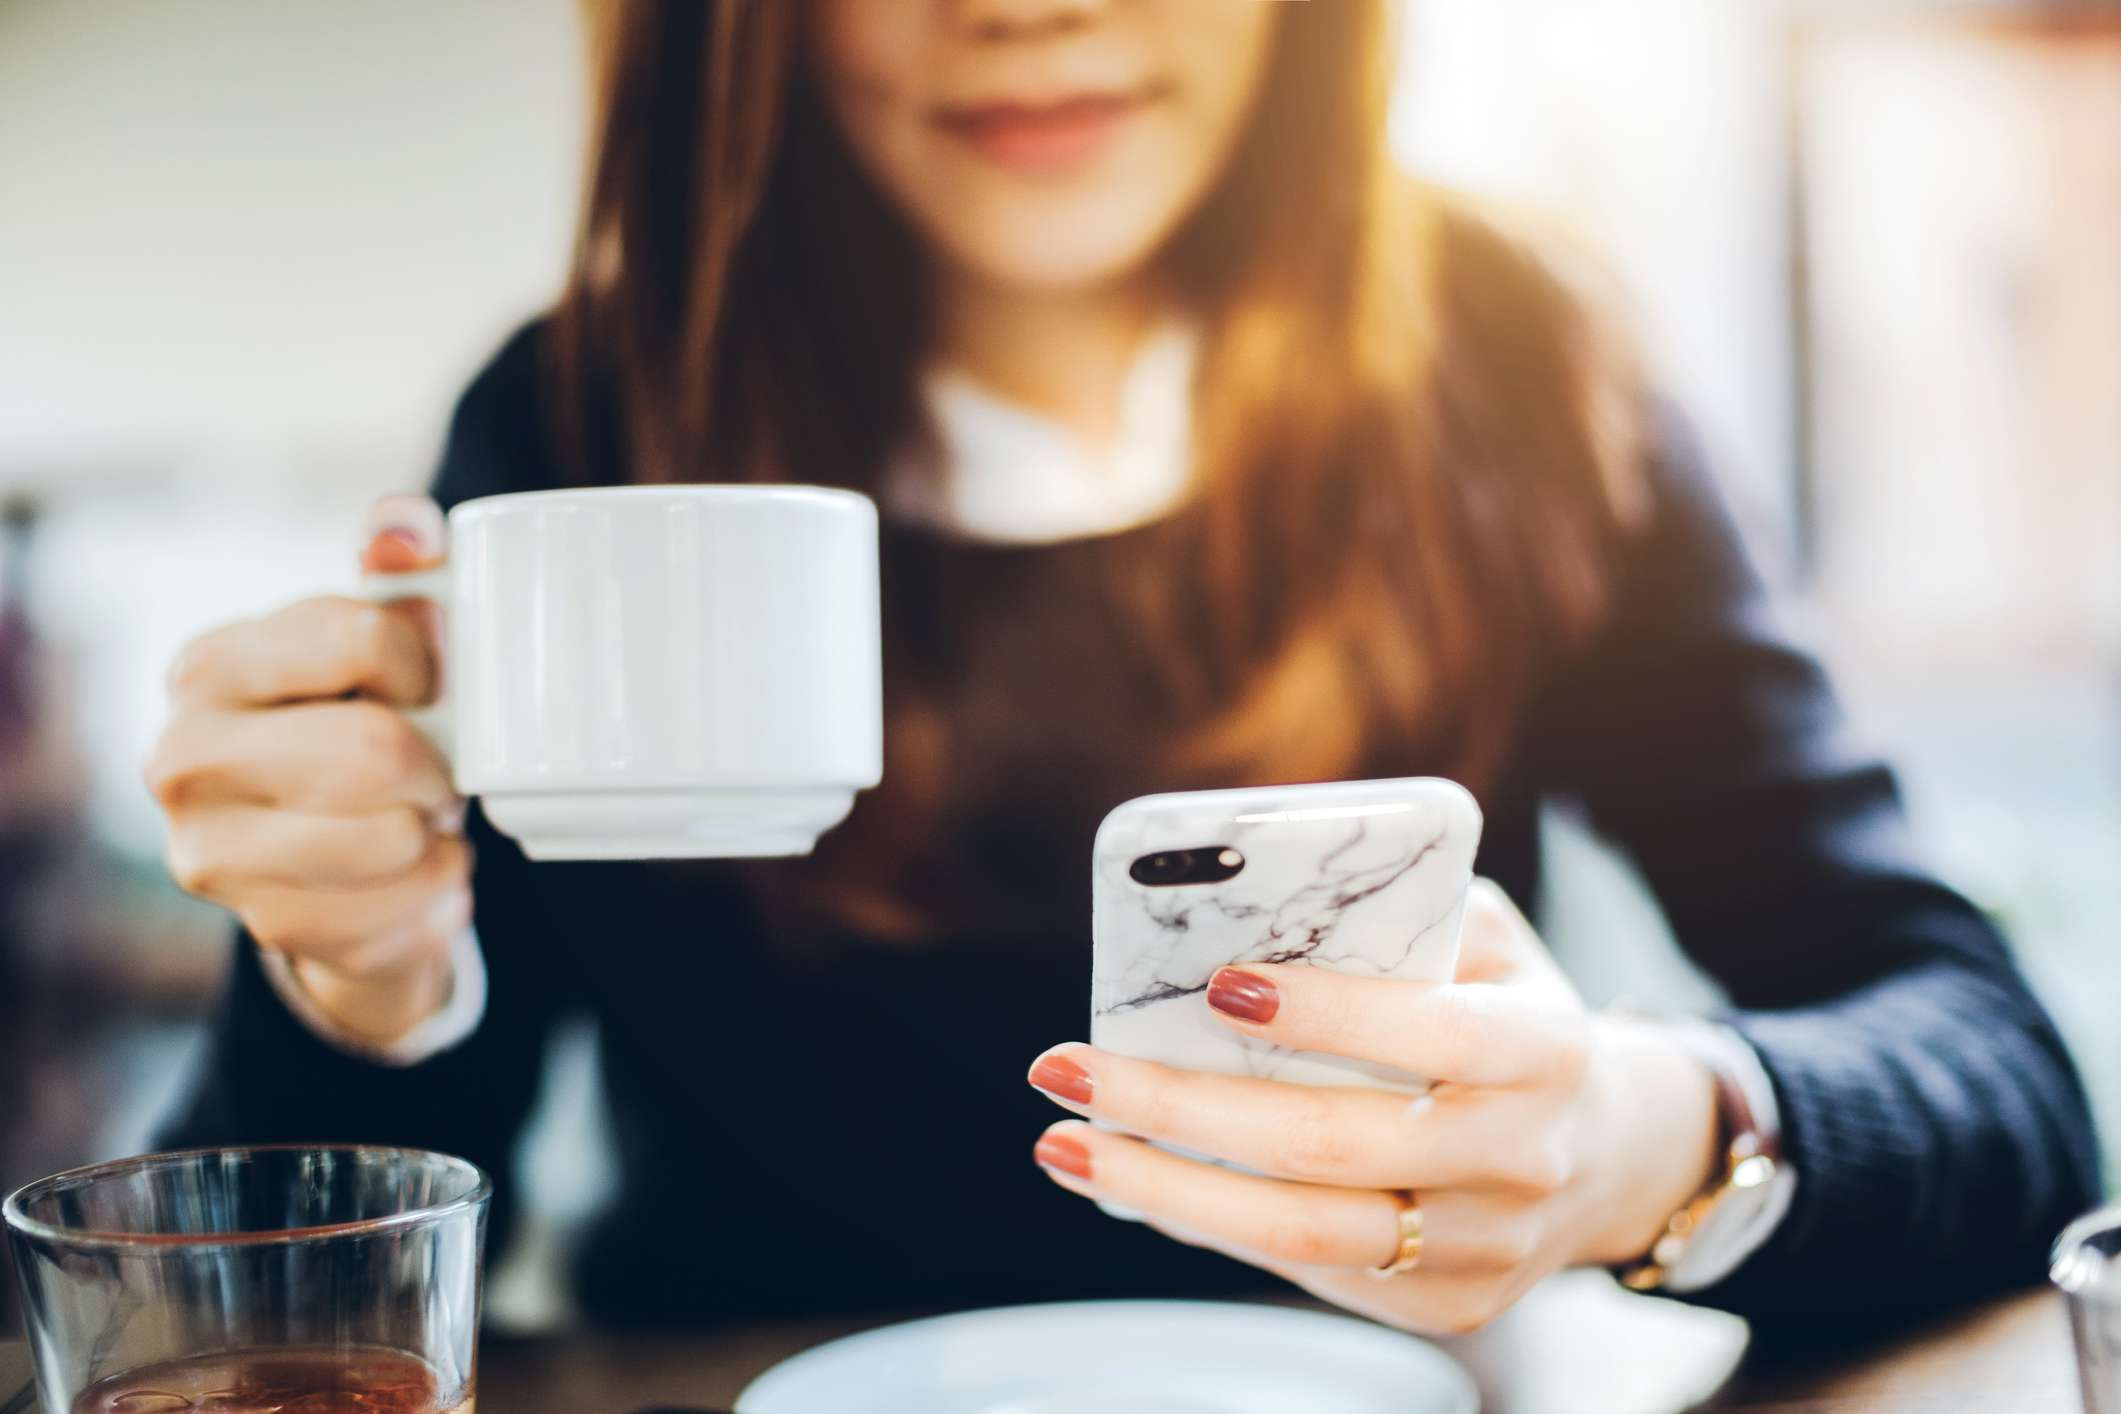 woman drinking coffee and checking email on phone